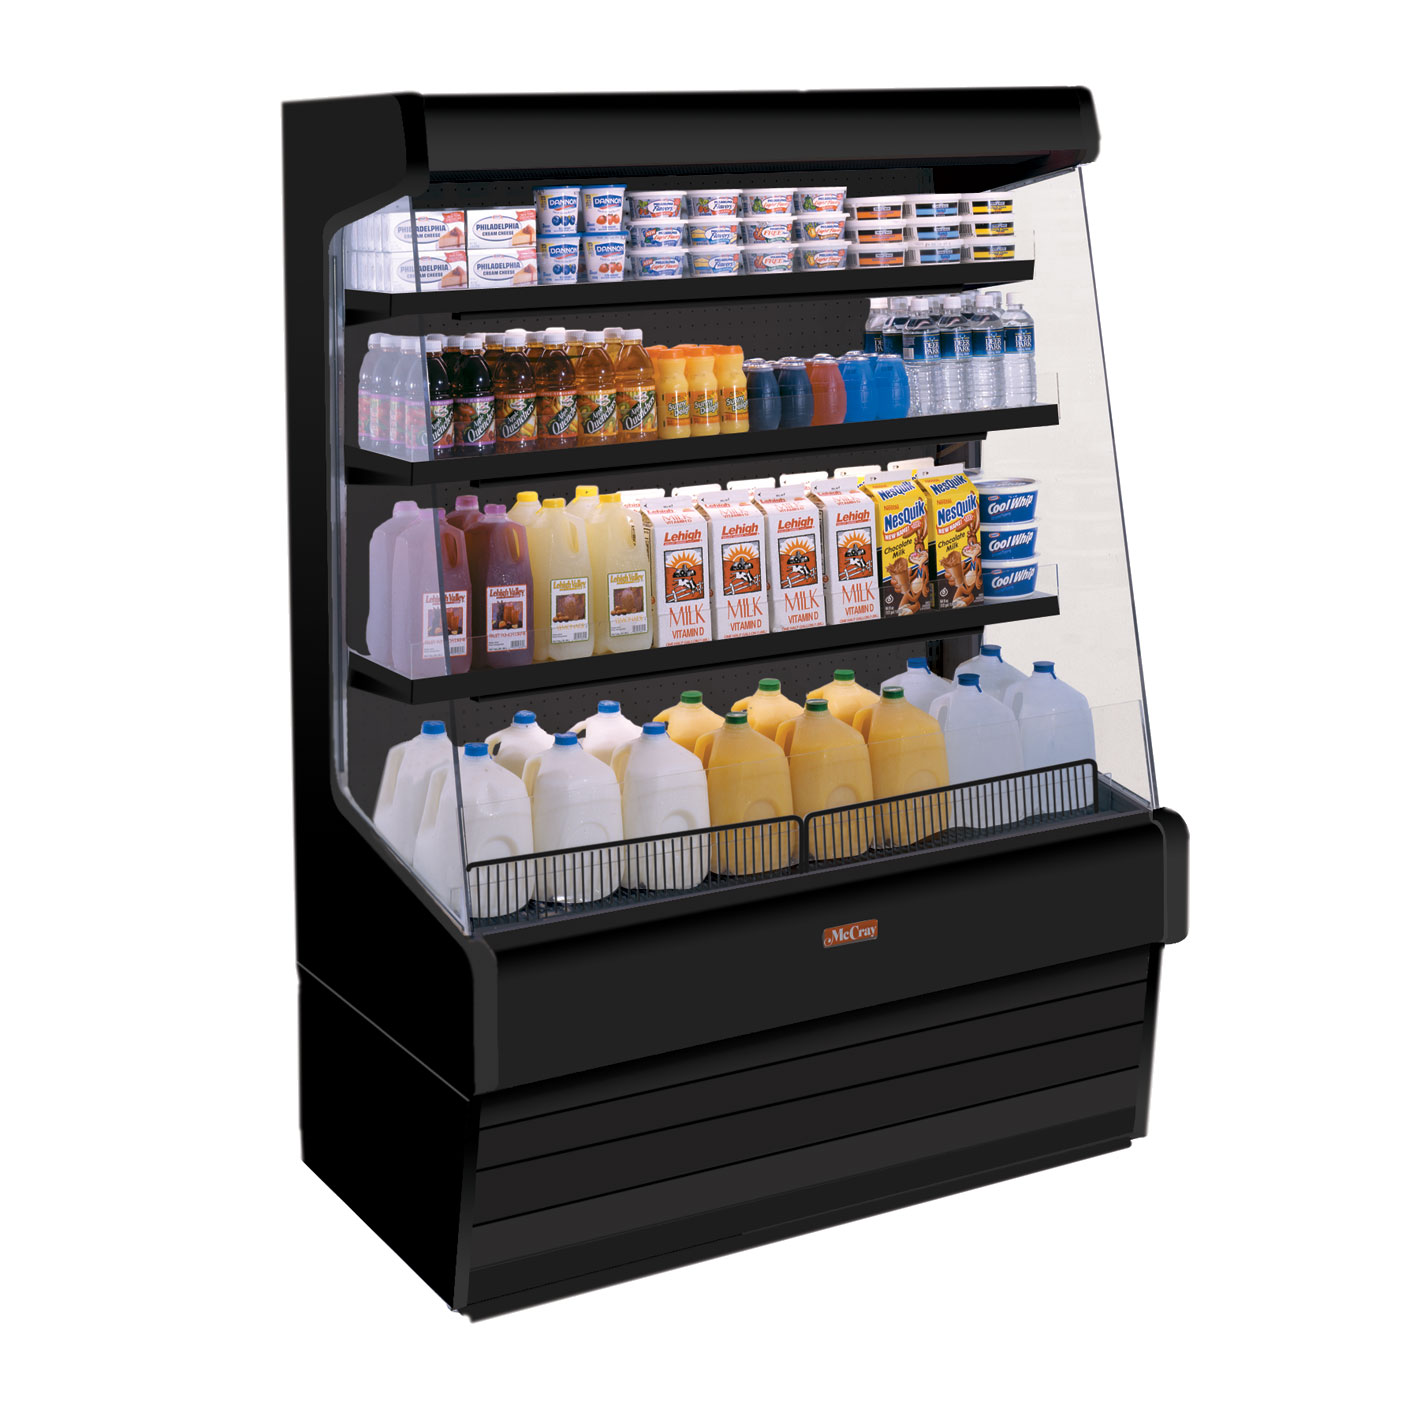 Howard-McCray R-OD30E-8-B-LED merchandiser, open refrigerated display